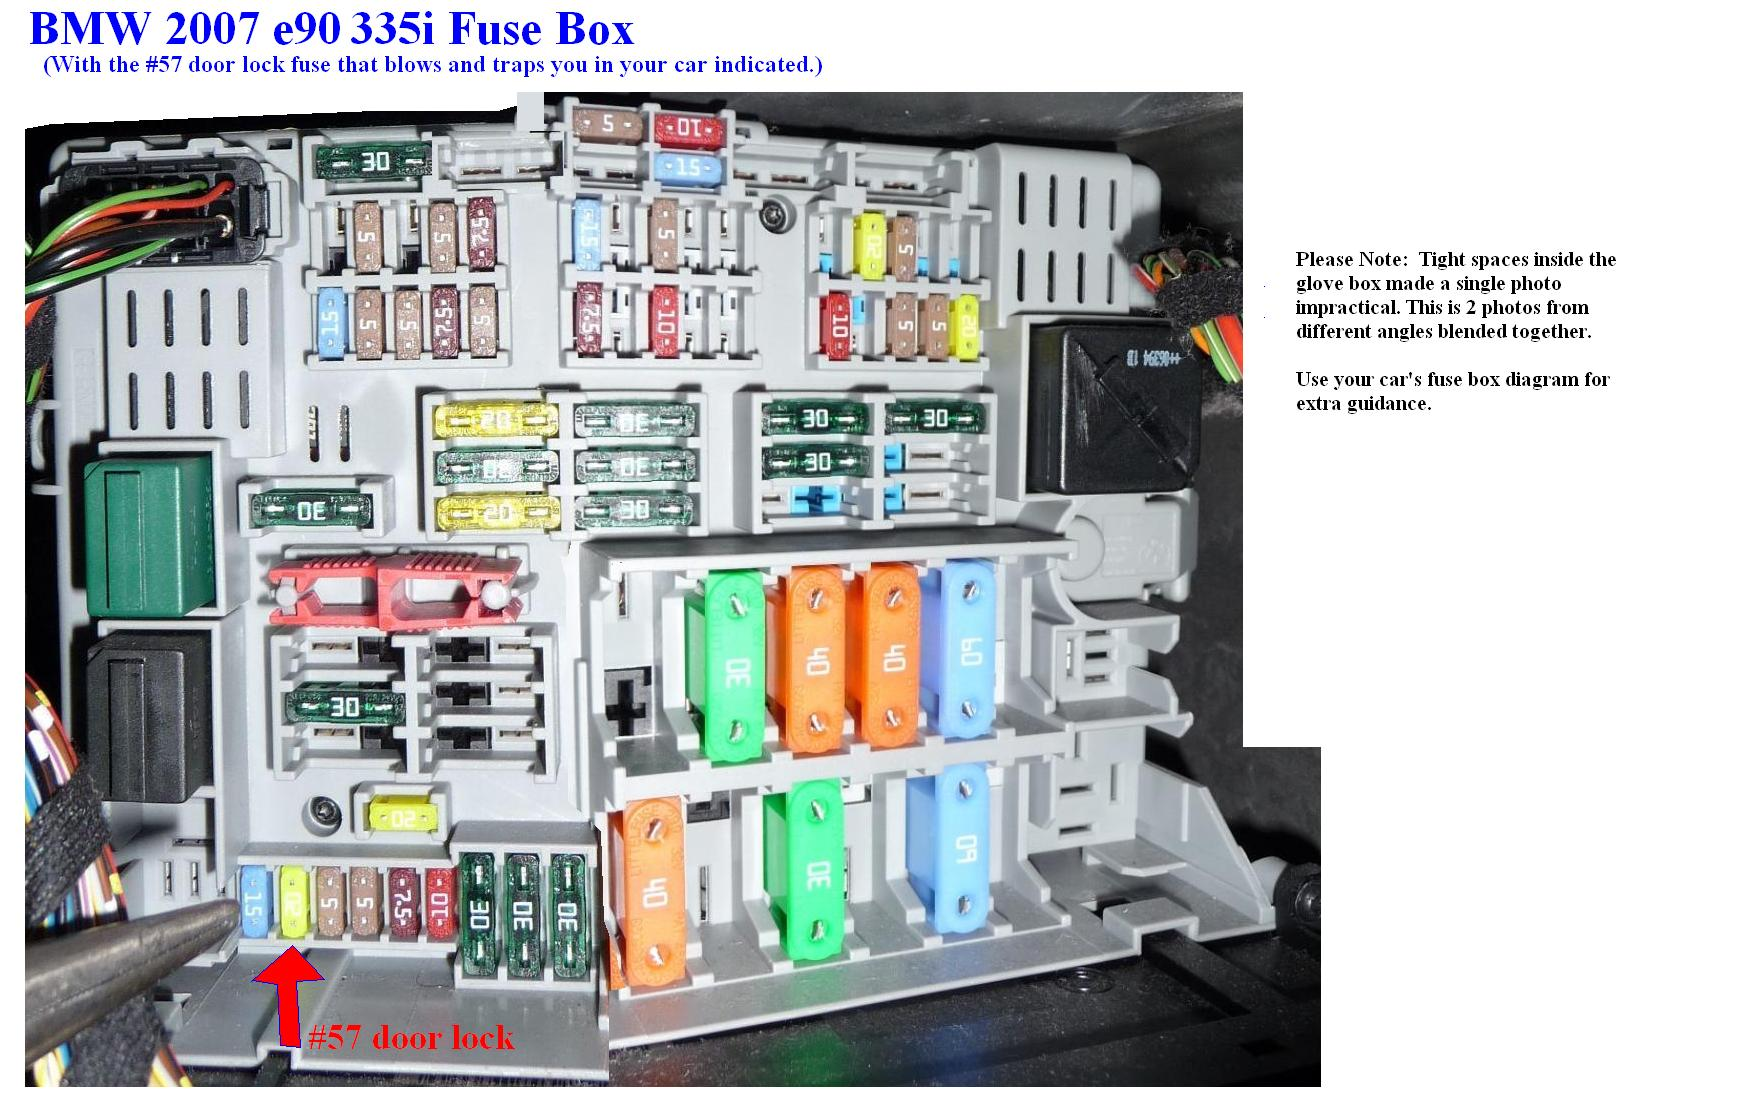 E90fuses_57 2007 bmw e90 fuse diagram 2007 bmw e90 fuse box diagram \u2022 free bmw e90 fuse box layout at arjmand.co